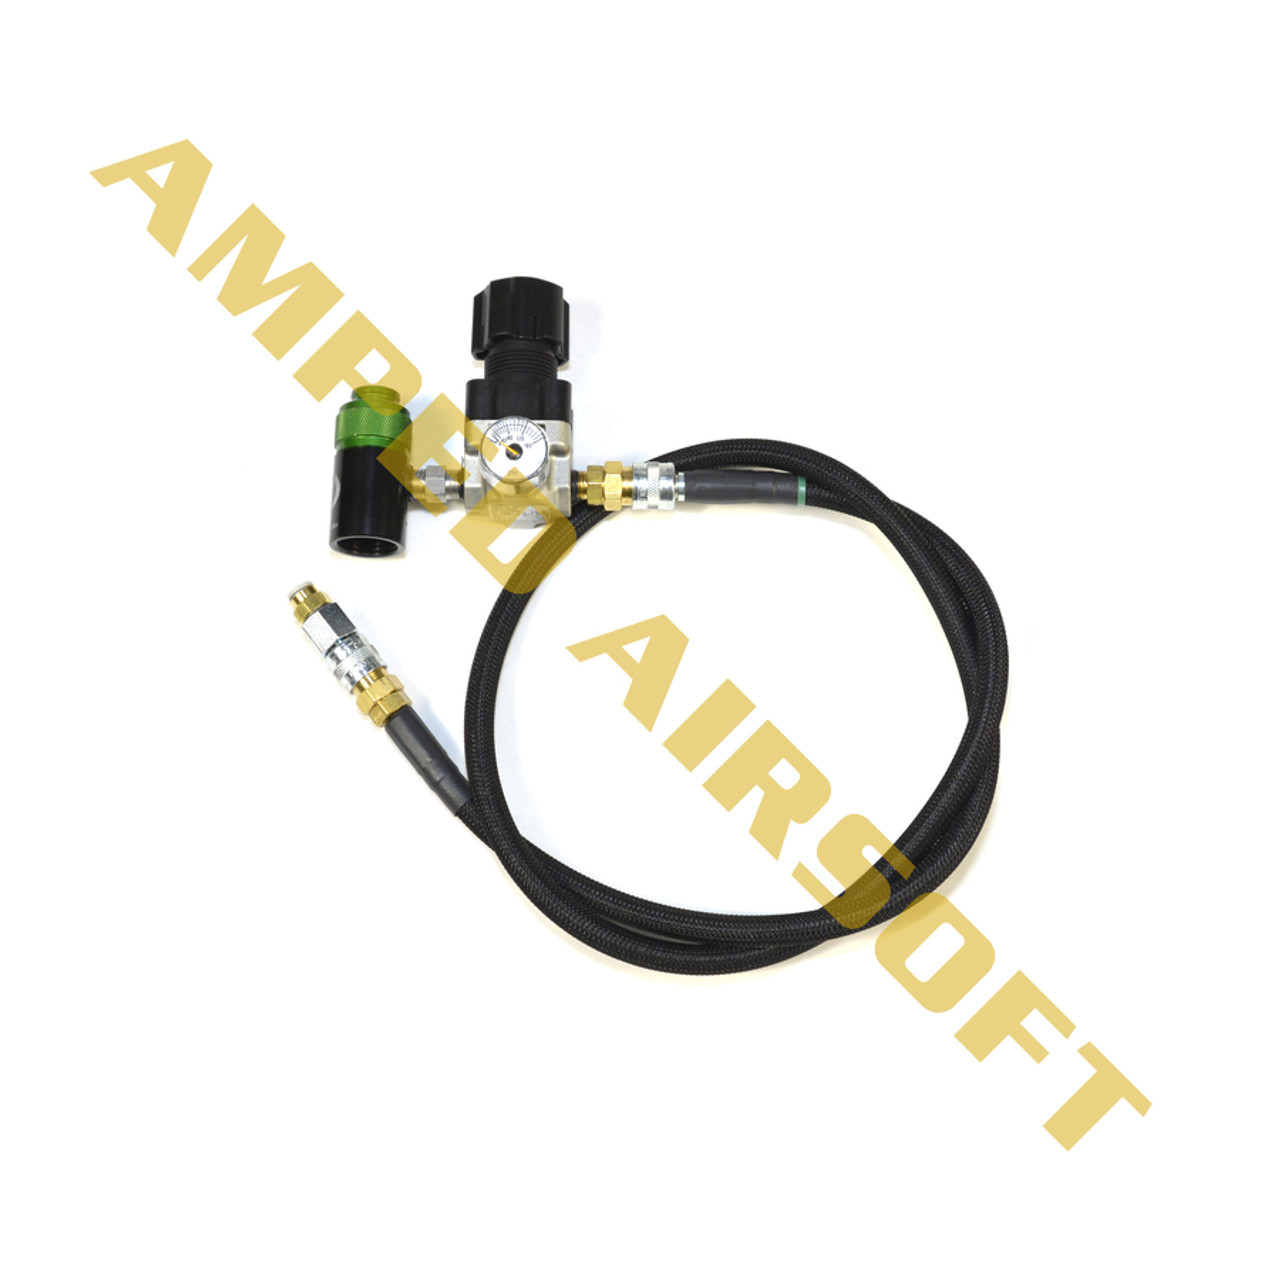 small resolution of amped custom hpa rig slp